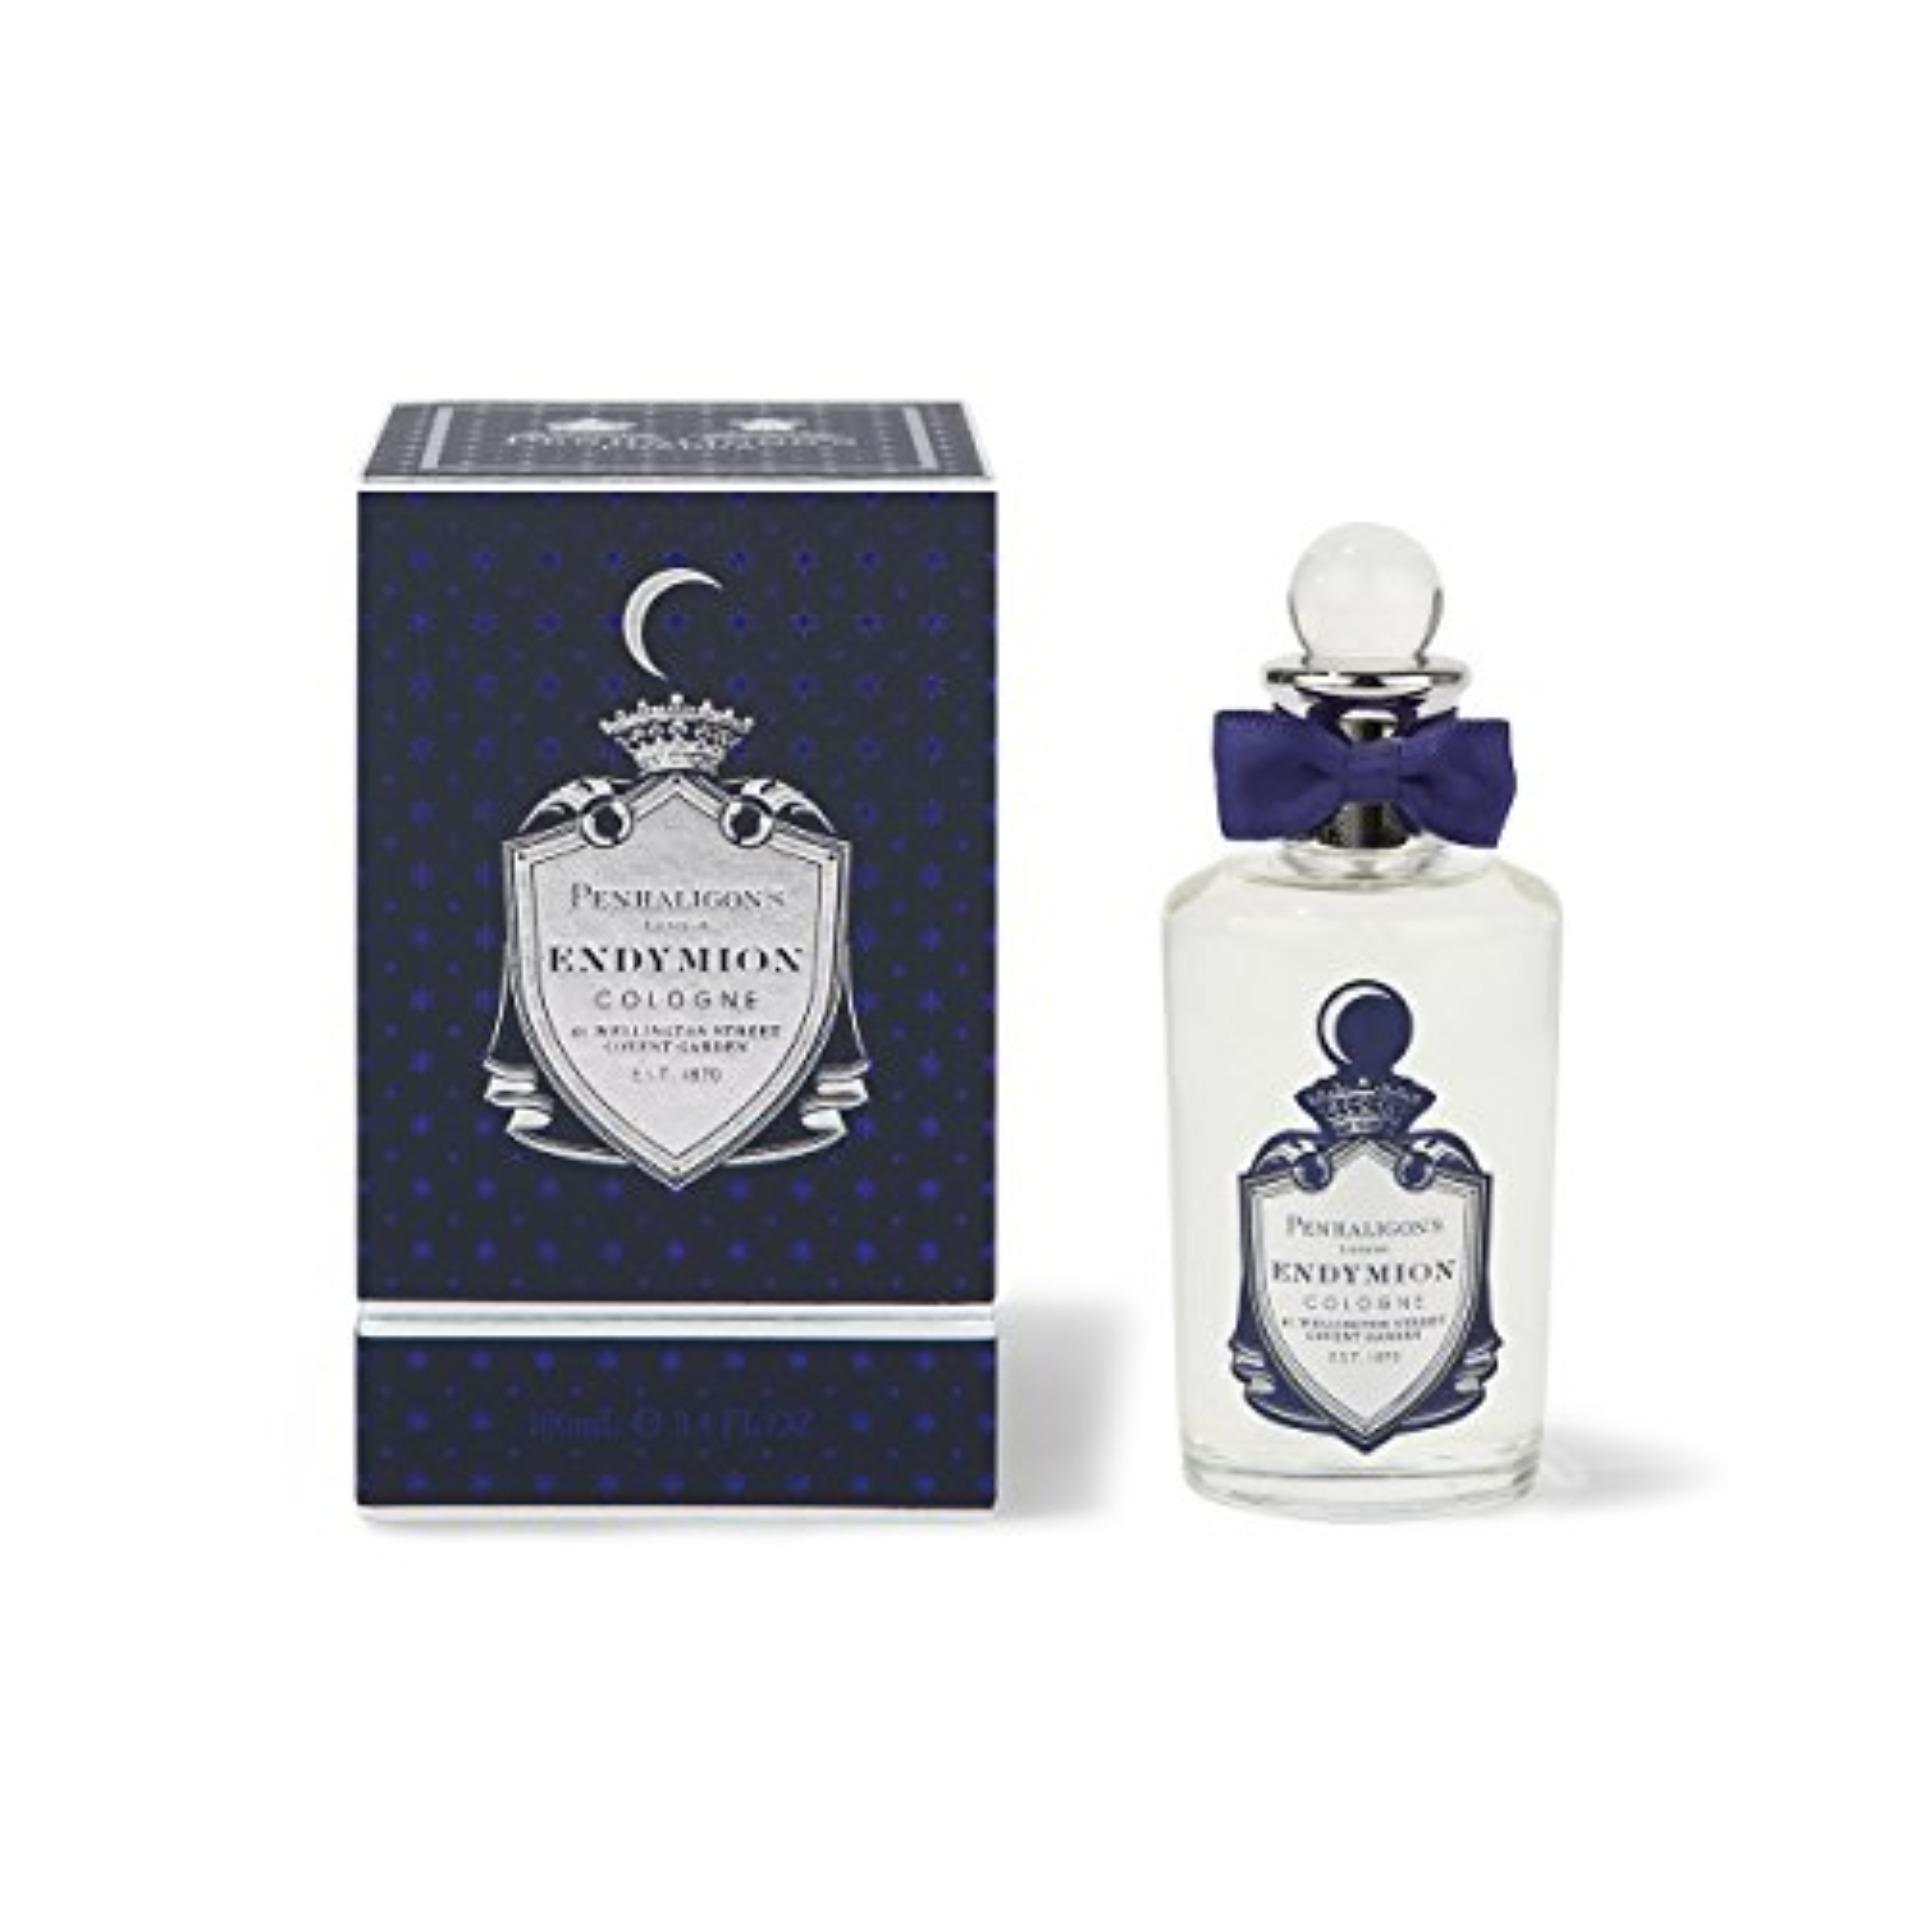 Endymion Cologne by Penhaligon's London for Men 100ml